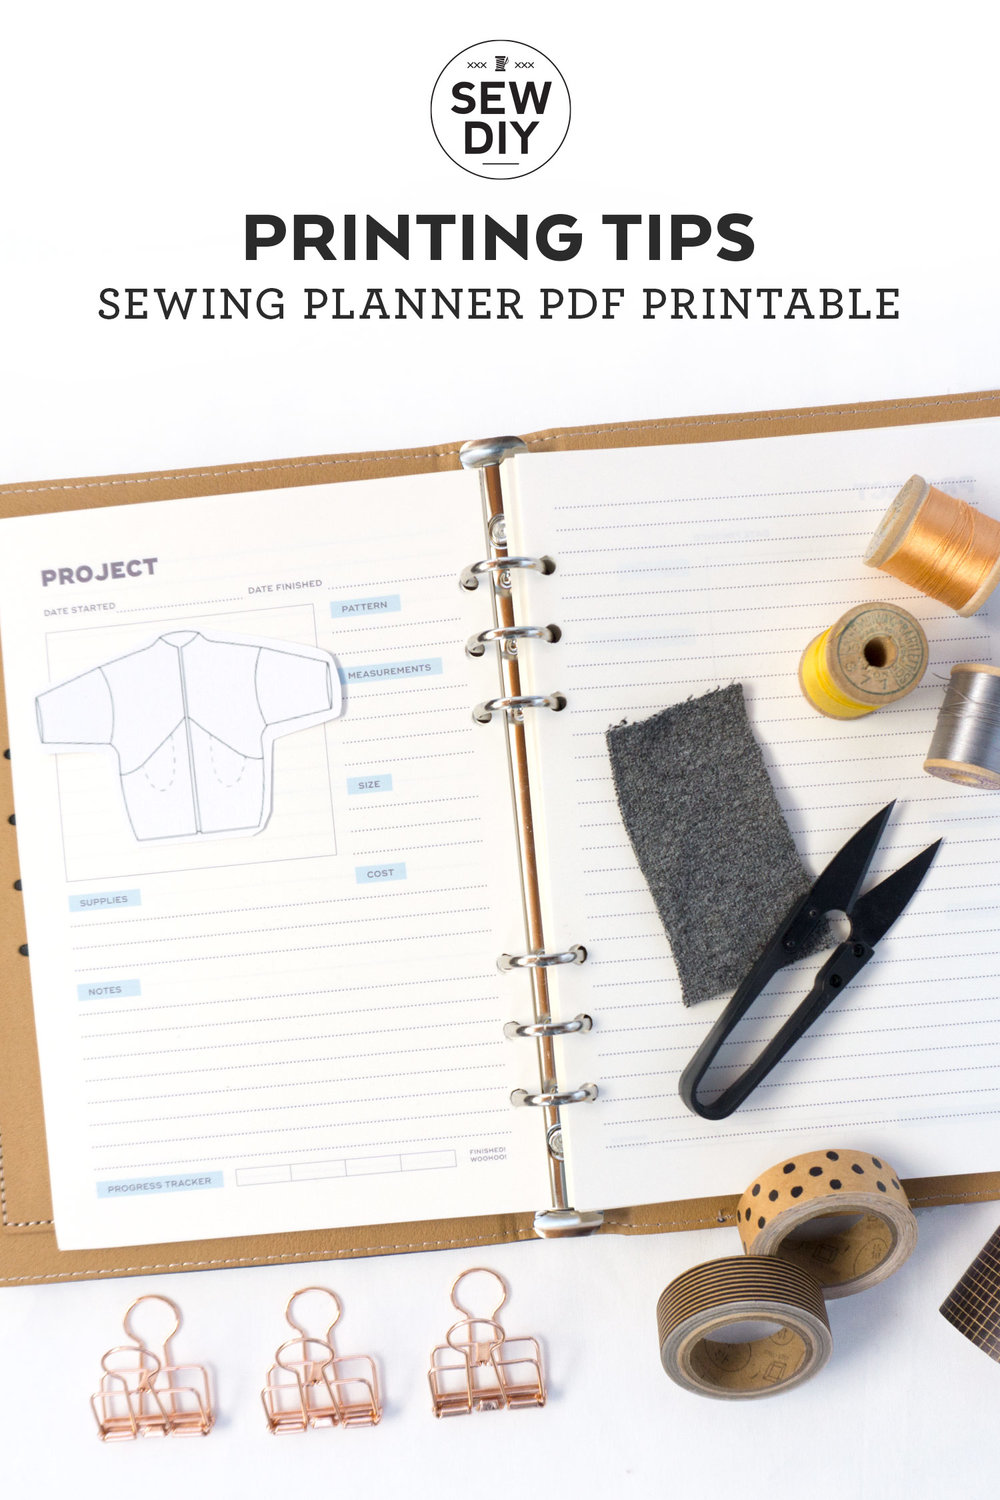 Printable Planner Printing Tips | Sew DIY